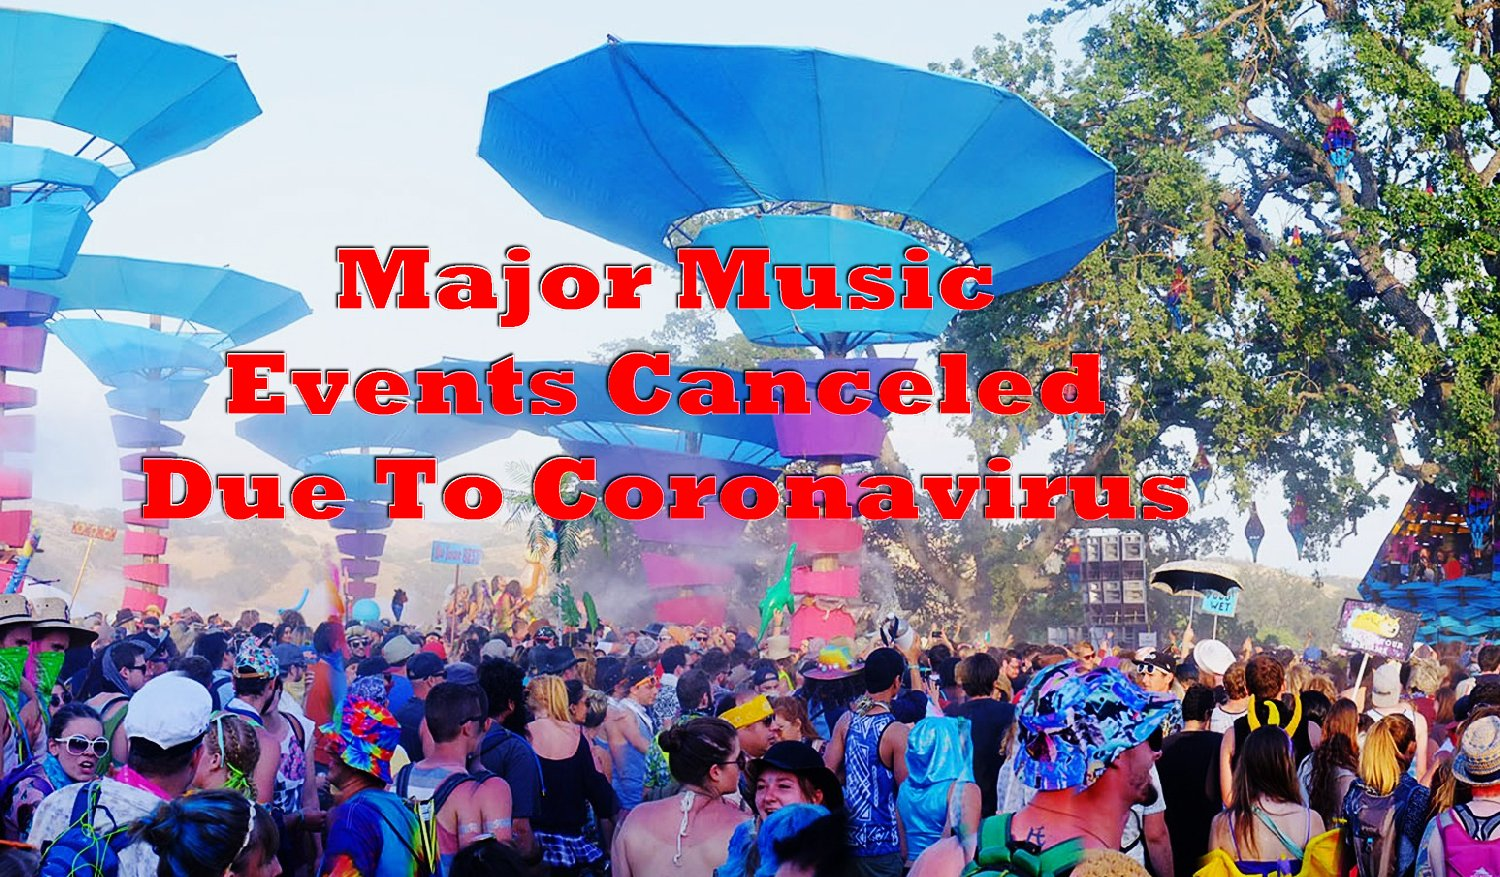 Major Music Events Canceled Due to Coronavirus